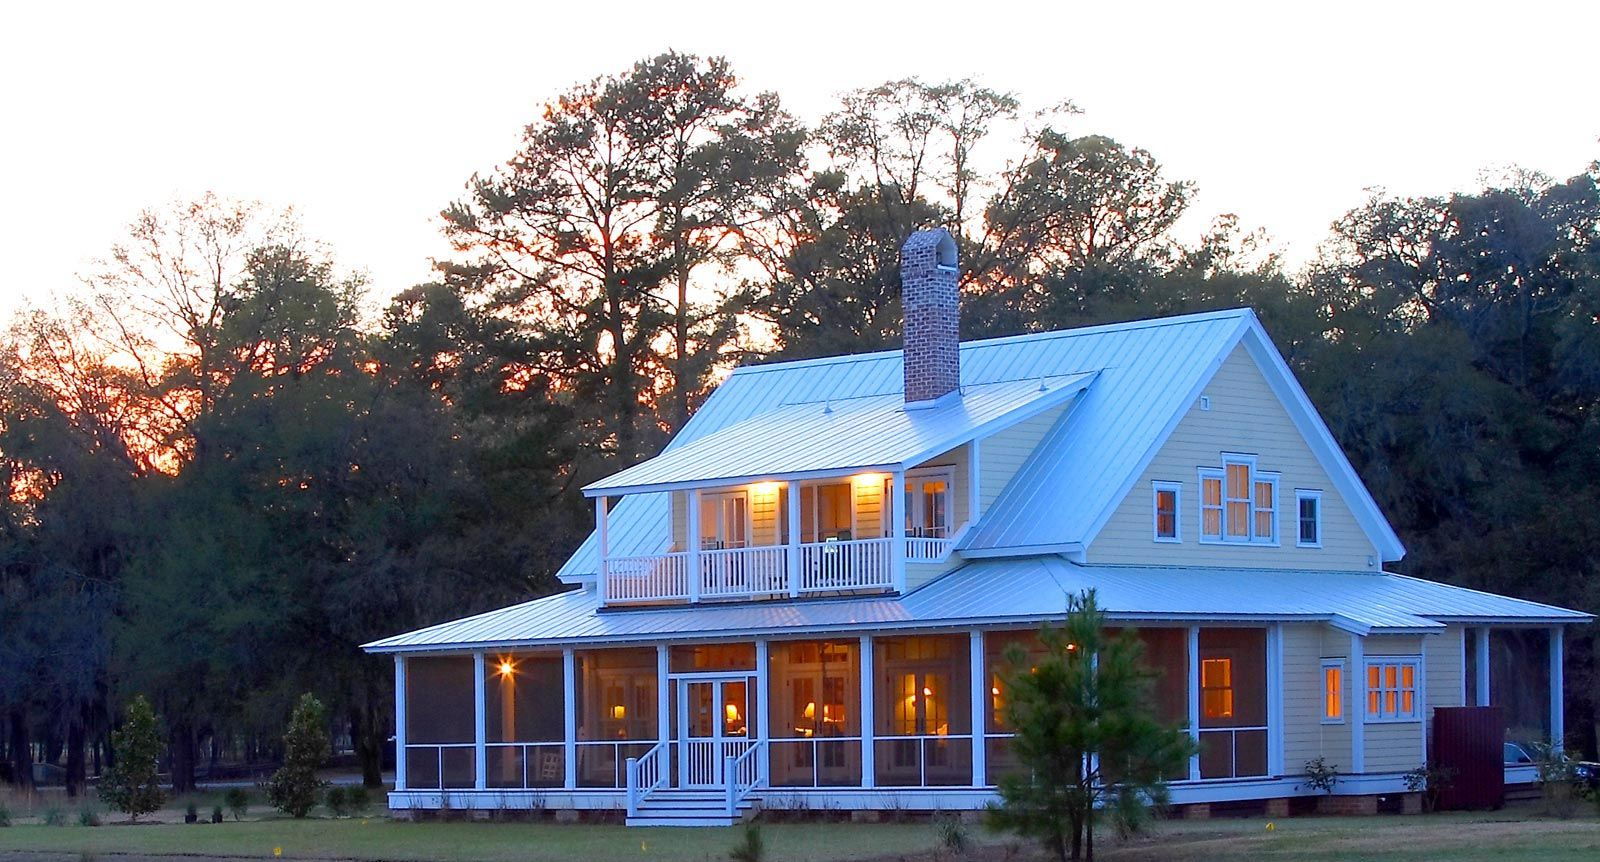 New Construction Remodeling Renovation Case Studies Marvin Family Of Brands Low Country Homes House Dream House